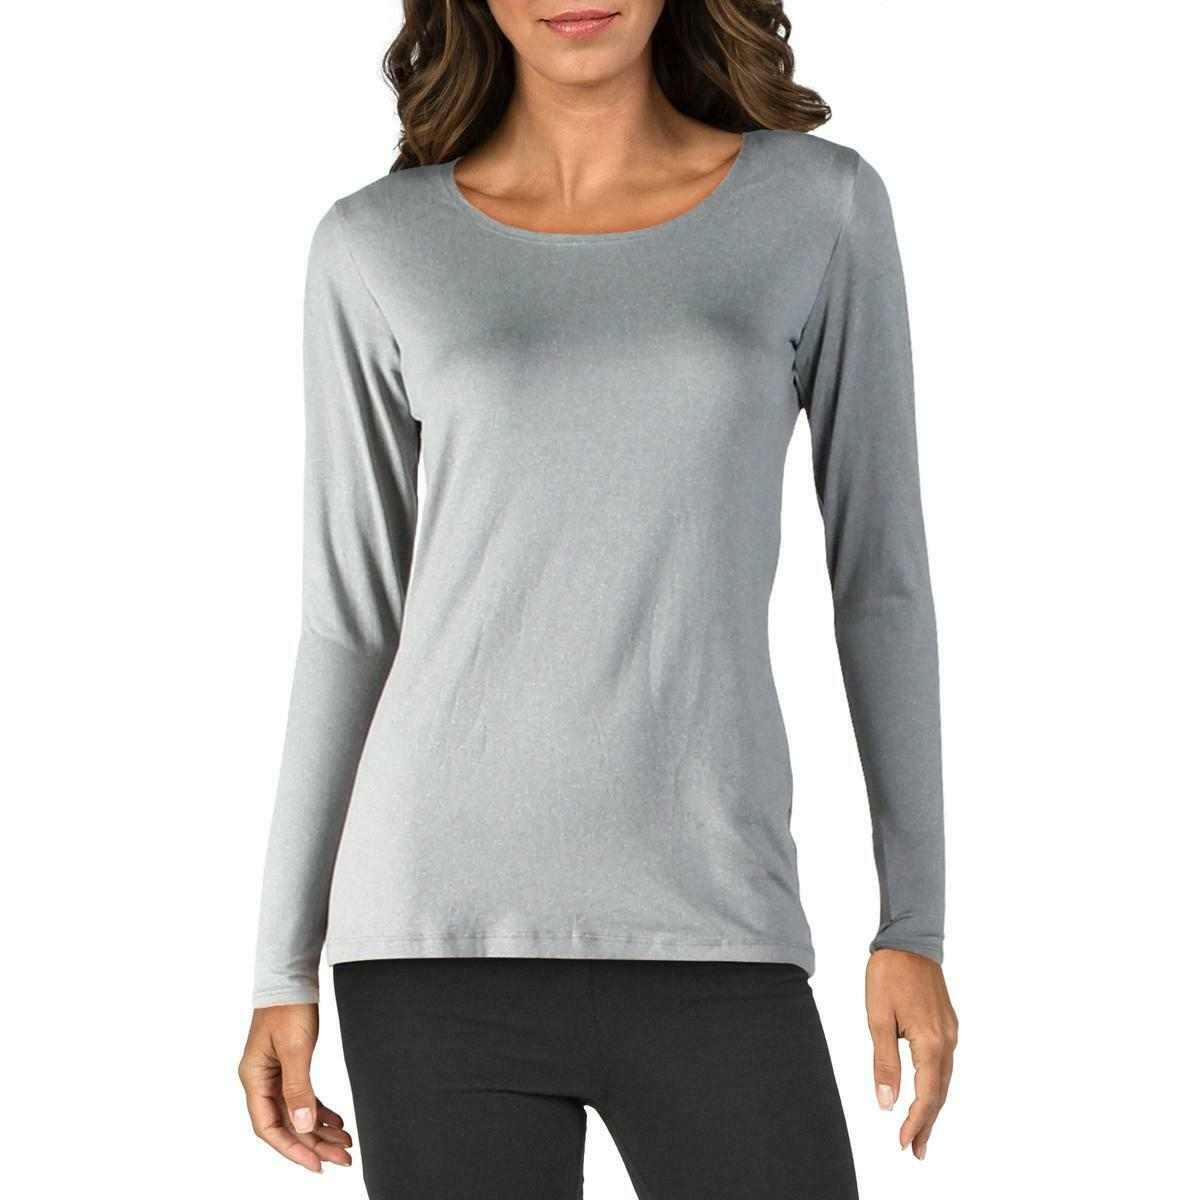 32 Degrees Heat Womens Gray Fitness Running Workout T-Shirt Athletic M BHFO 4166